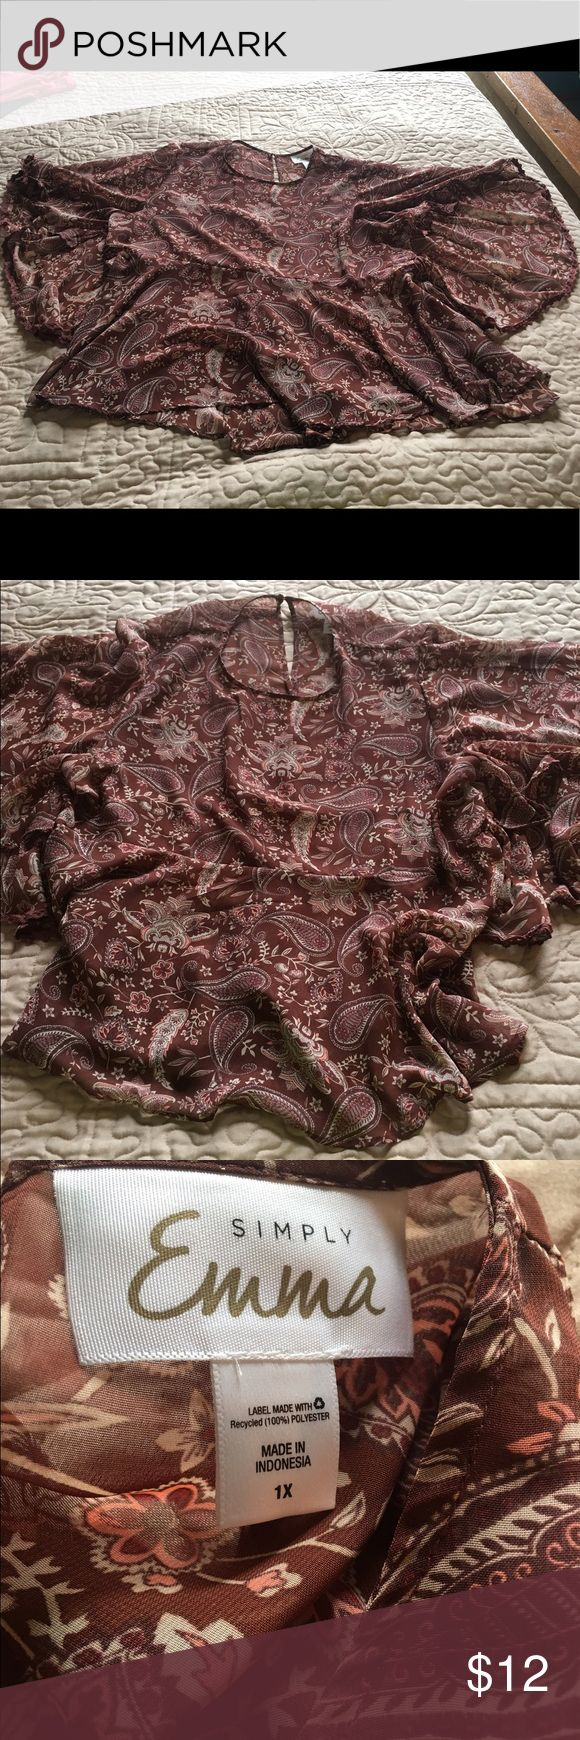 Simply Emma Sheer Blouse 💵 FINAL PRICE DROP! Simply Emma Sheer Blouse- neutral brown paisley print- bell type sleeves. Cute for spring with shorts or capris. Simply Emma Tops Tunics